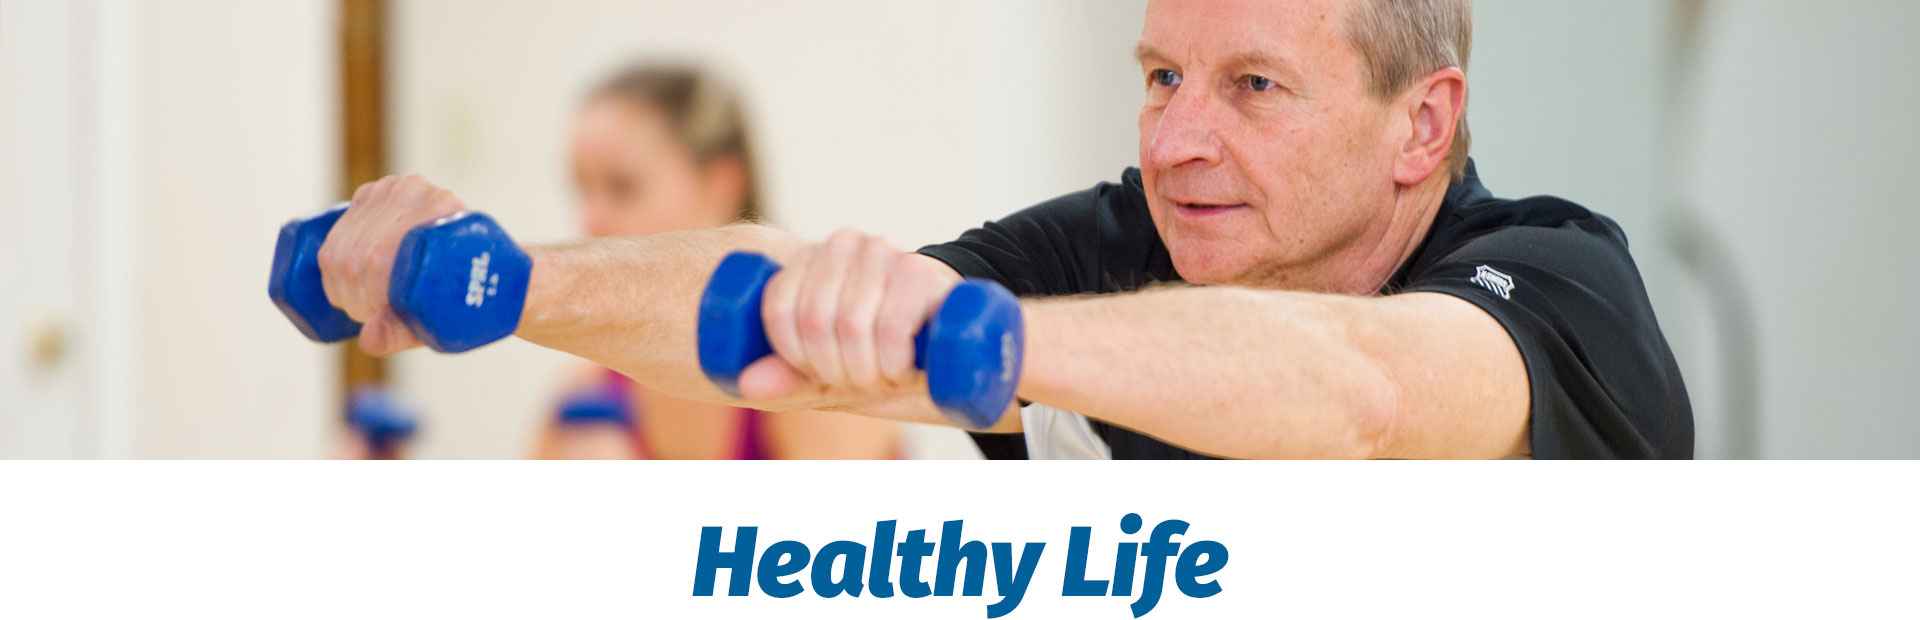 active adult life, active adult community life, kleinlife health